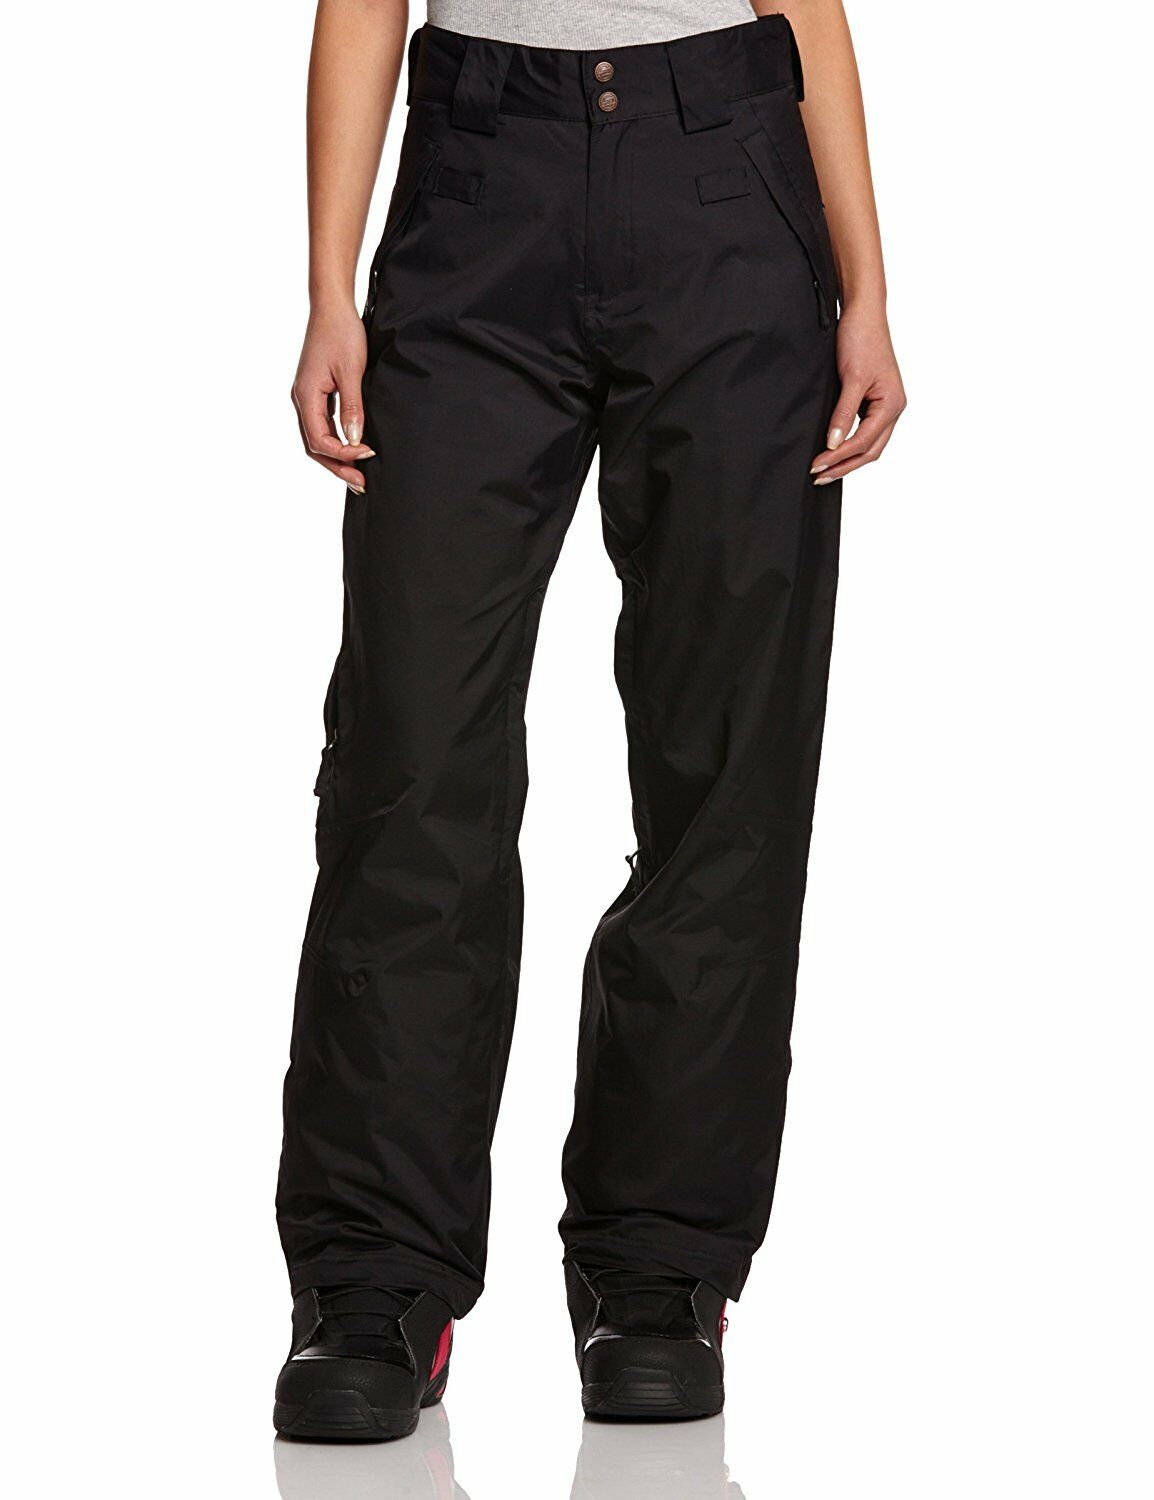 Santa Cruz Chute Women's Snow Pant